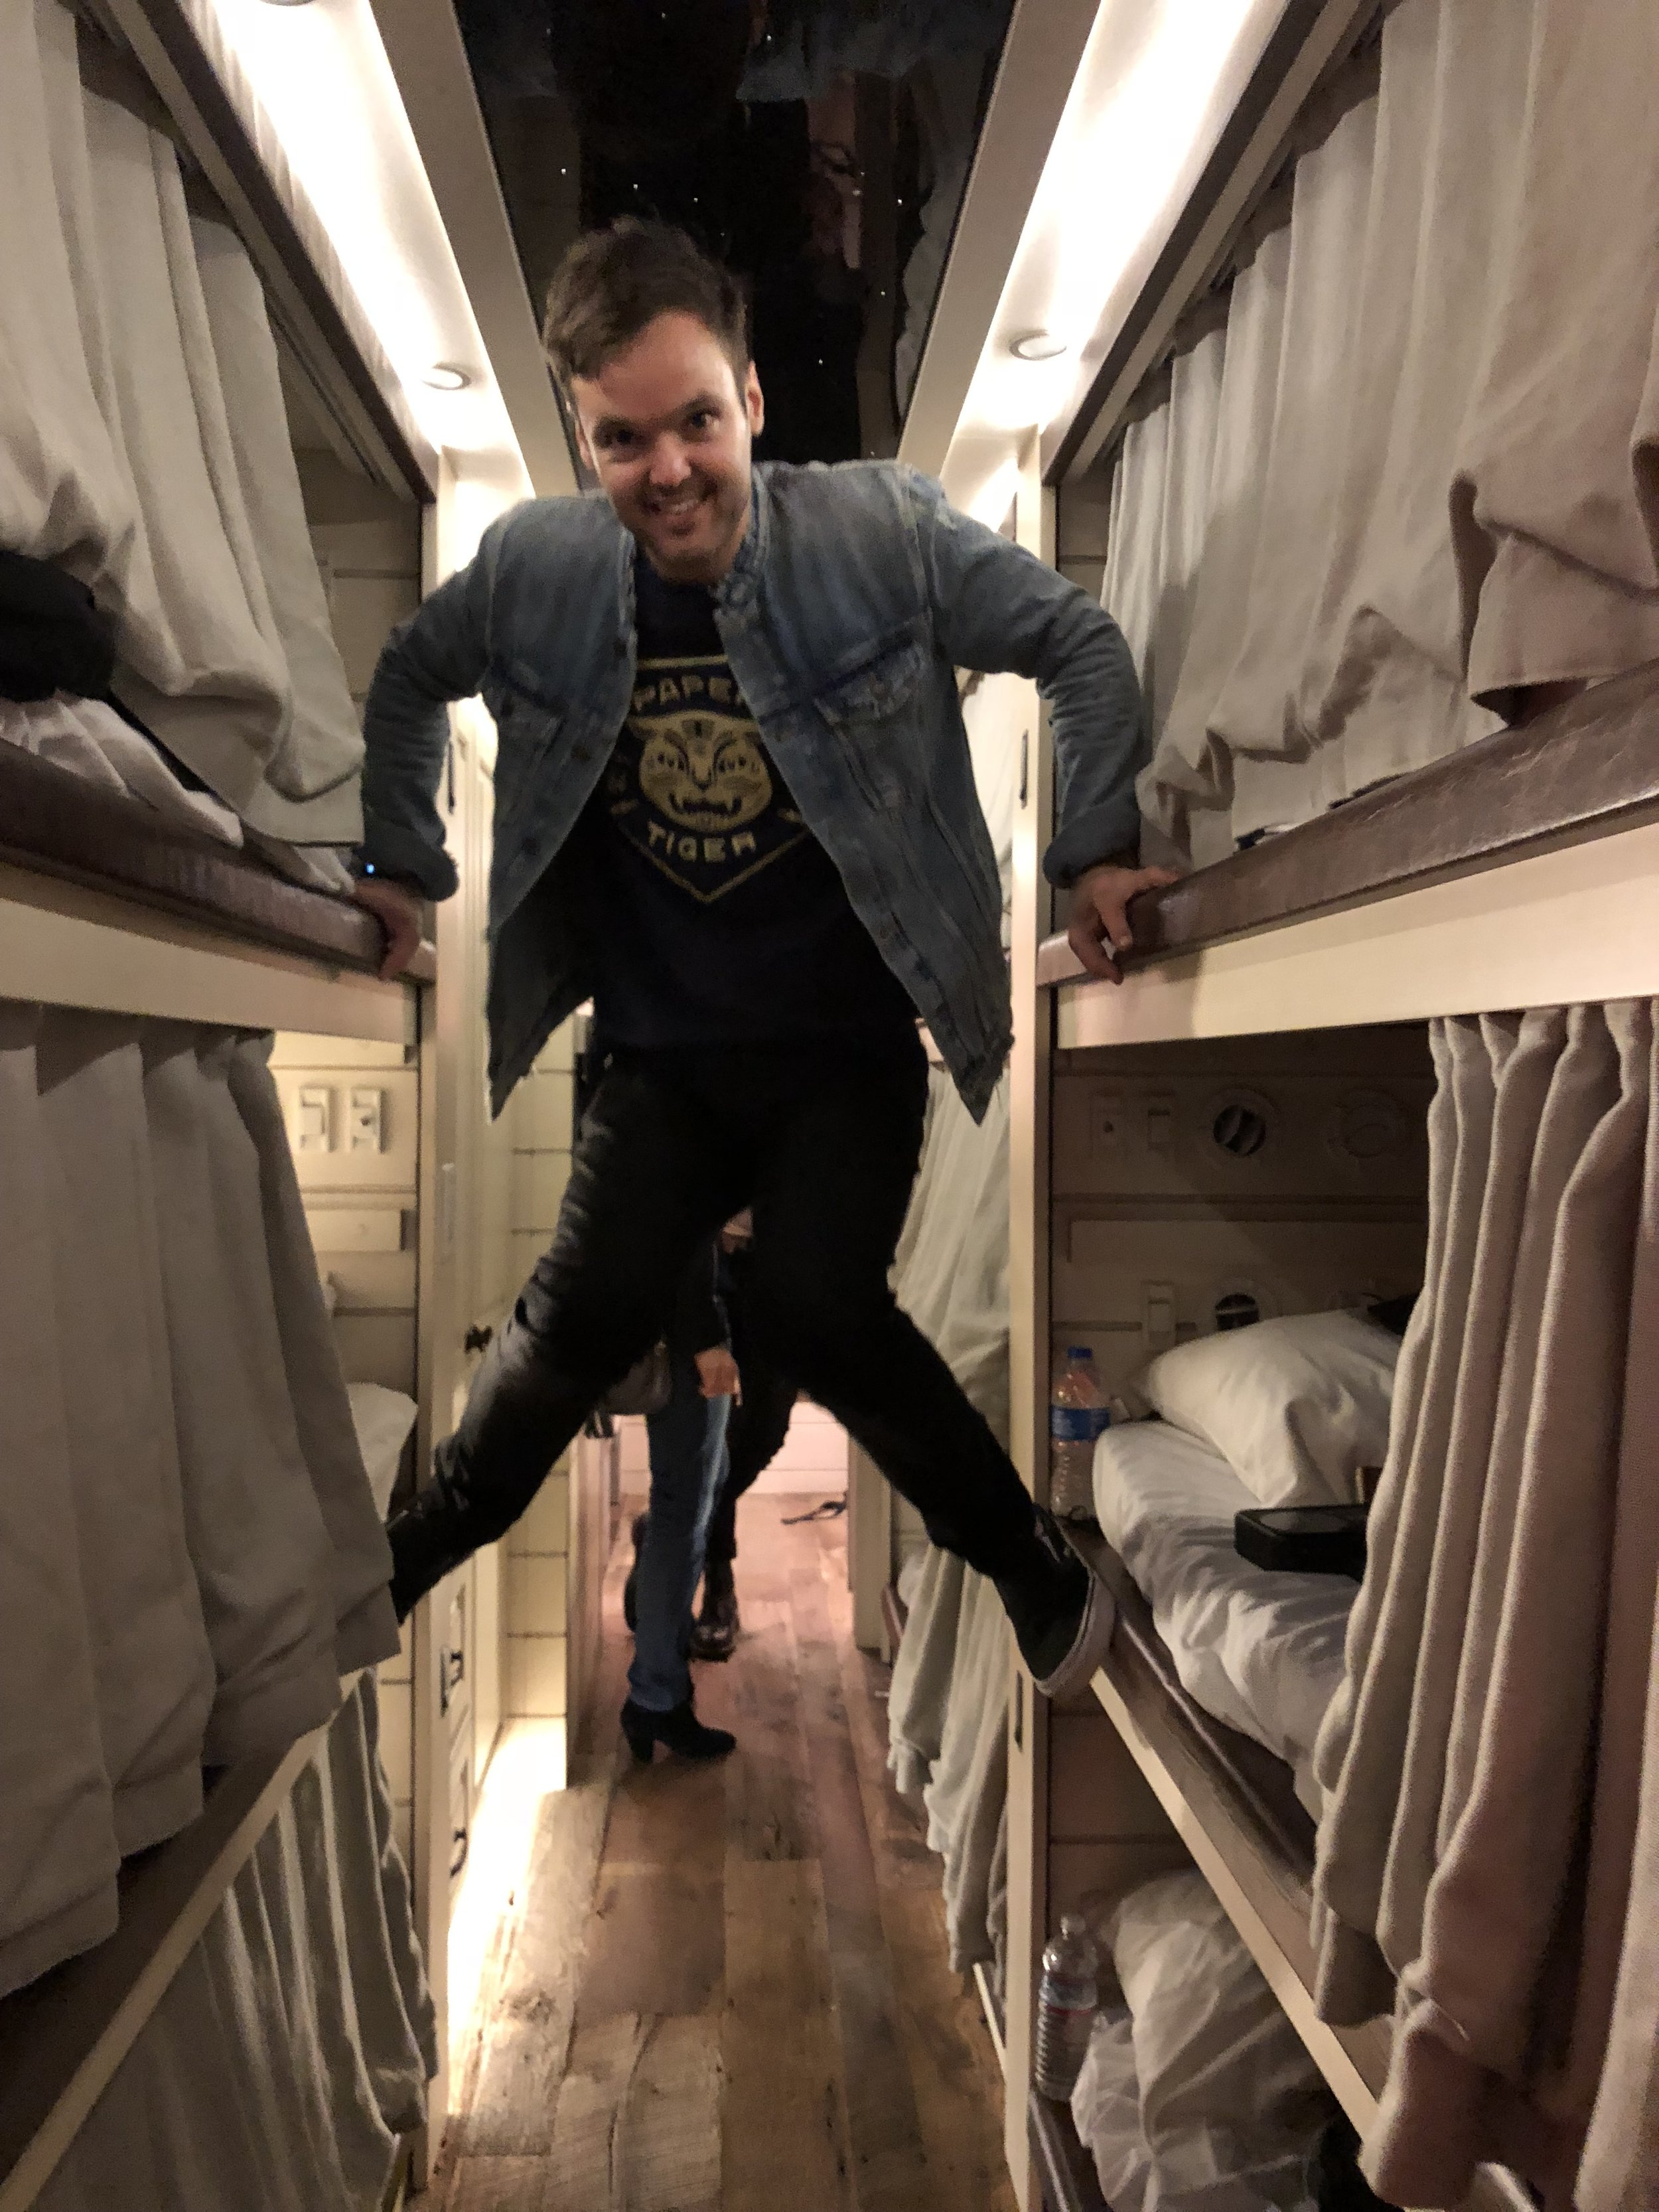 """Goofing around on their tour bus. """"This is how you get to the top bunk!"""""""